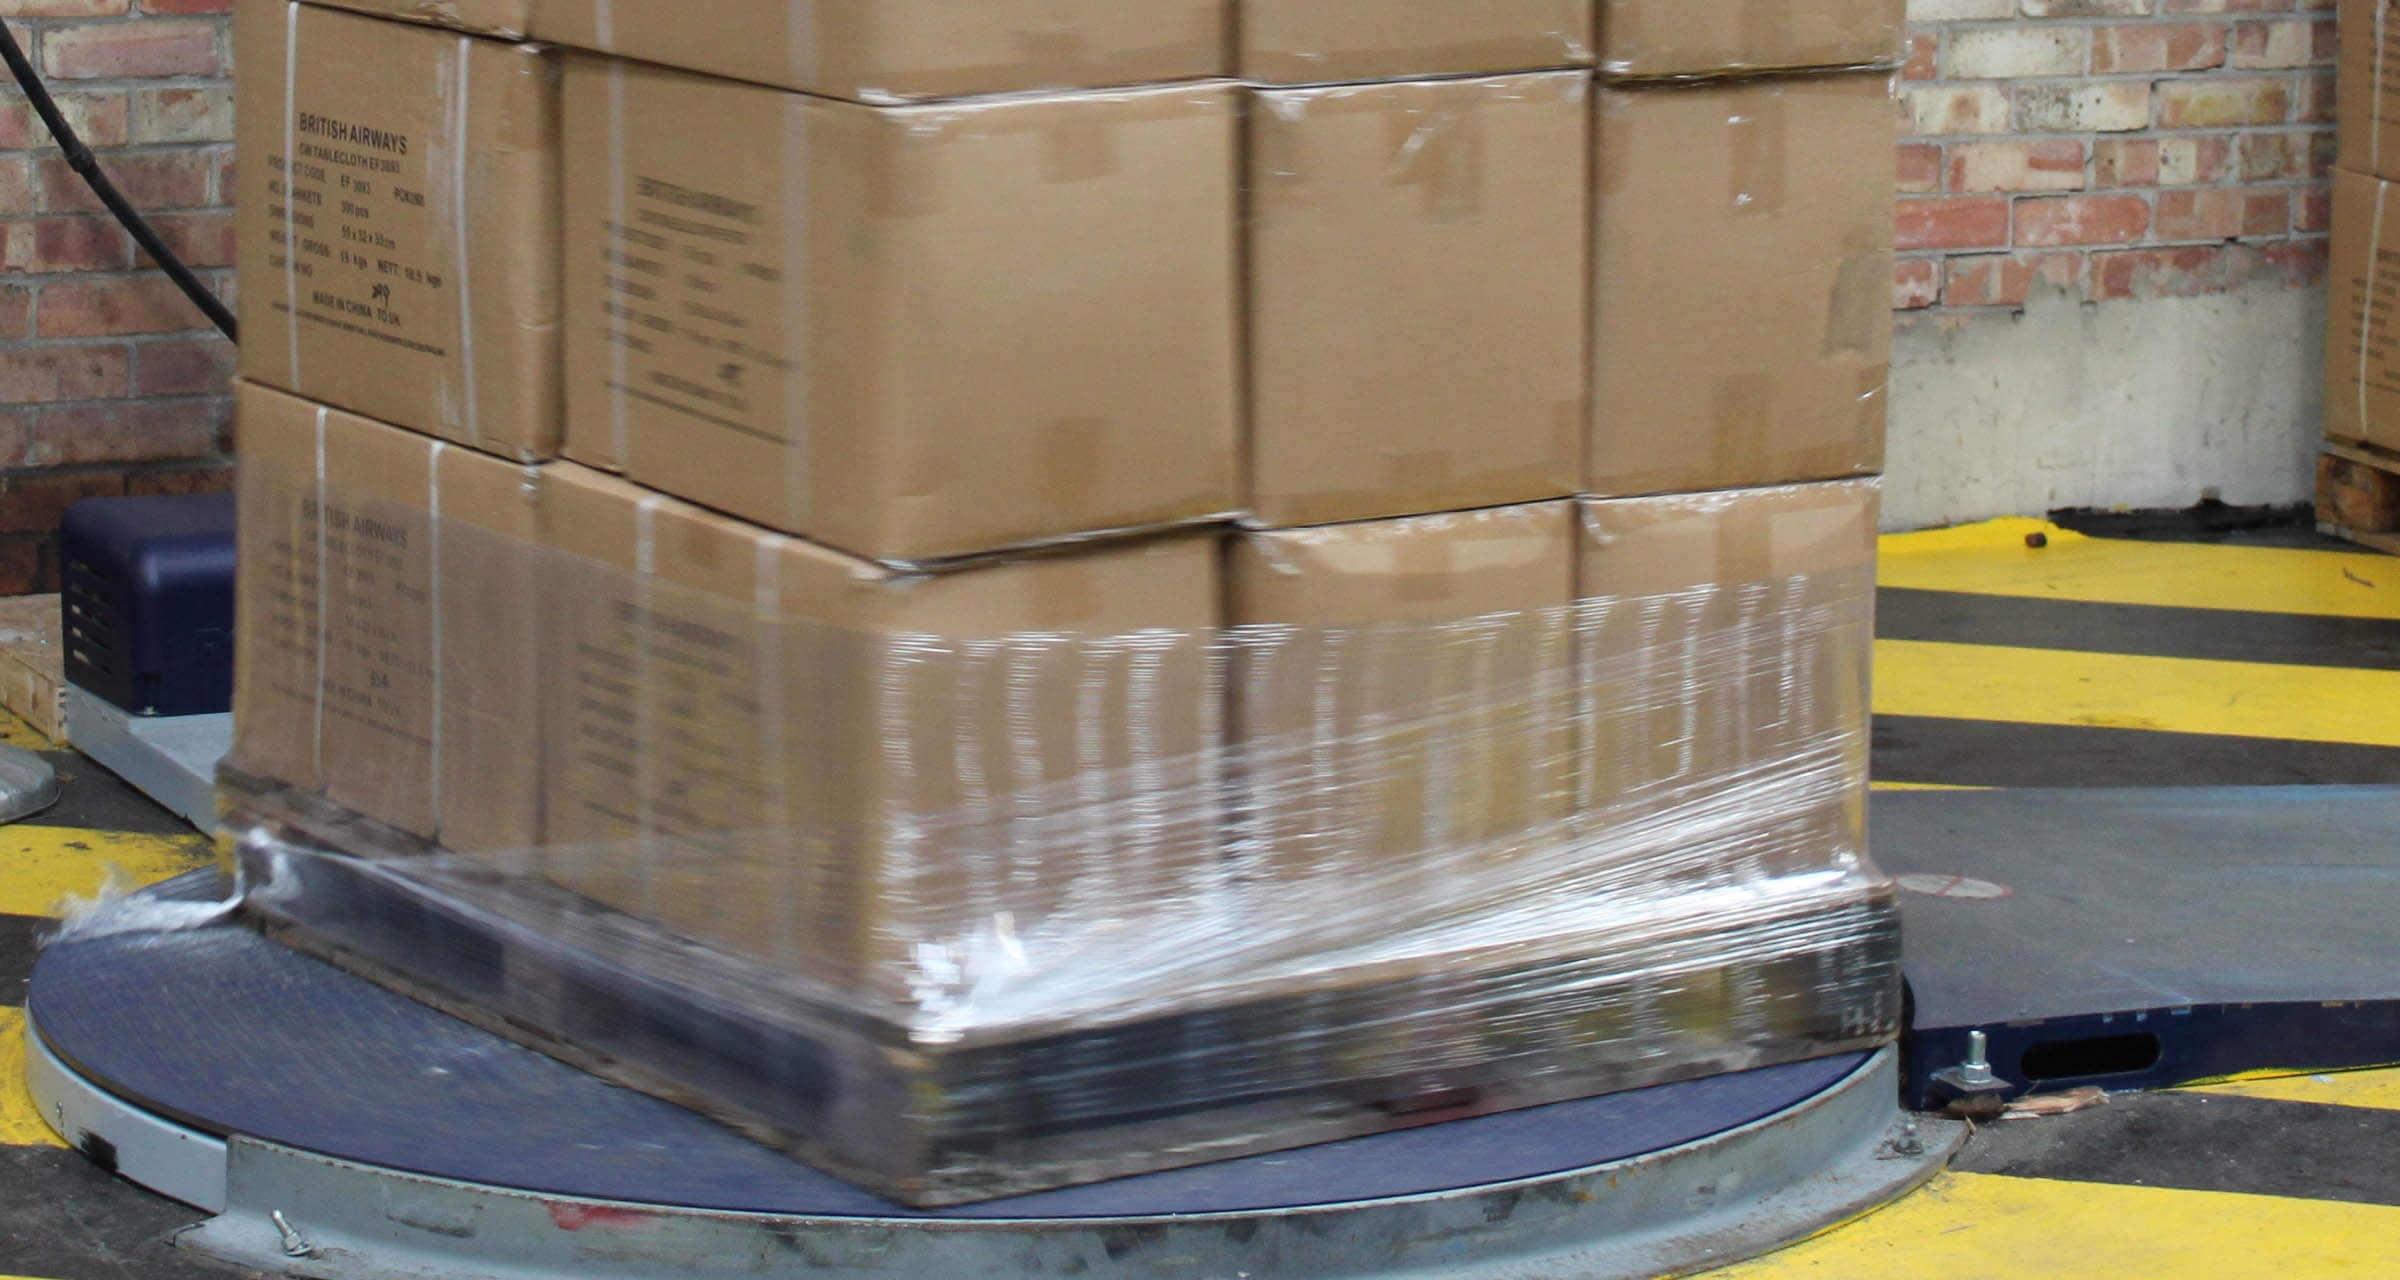 Pallet wrapping innovations reduce plastic use